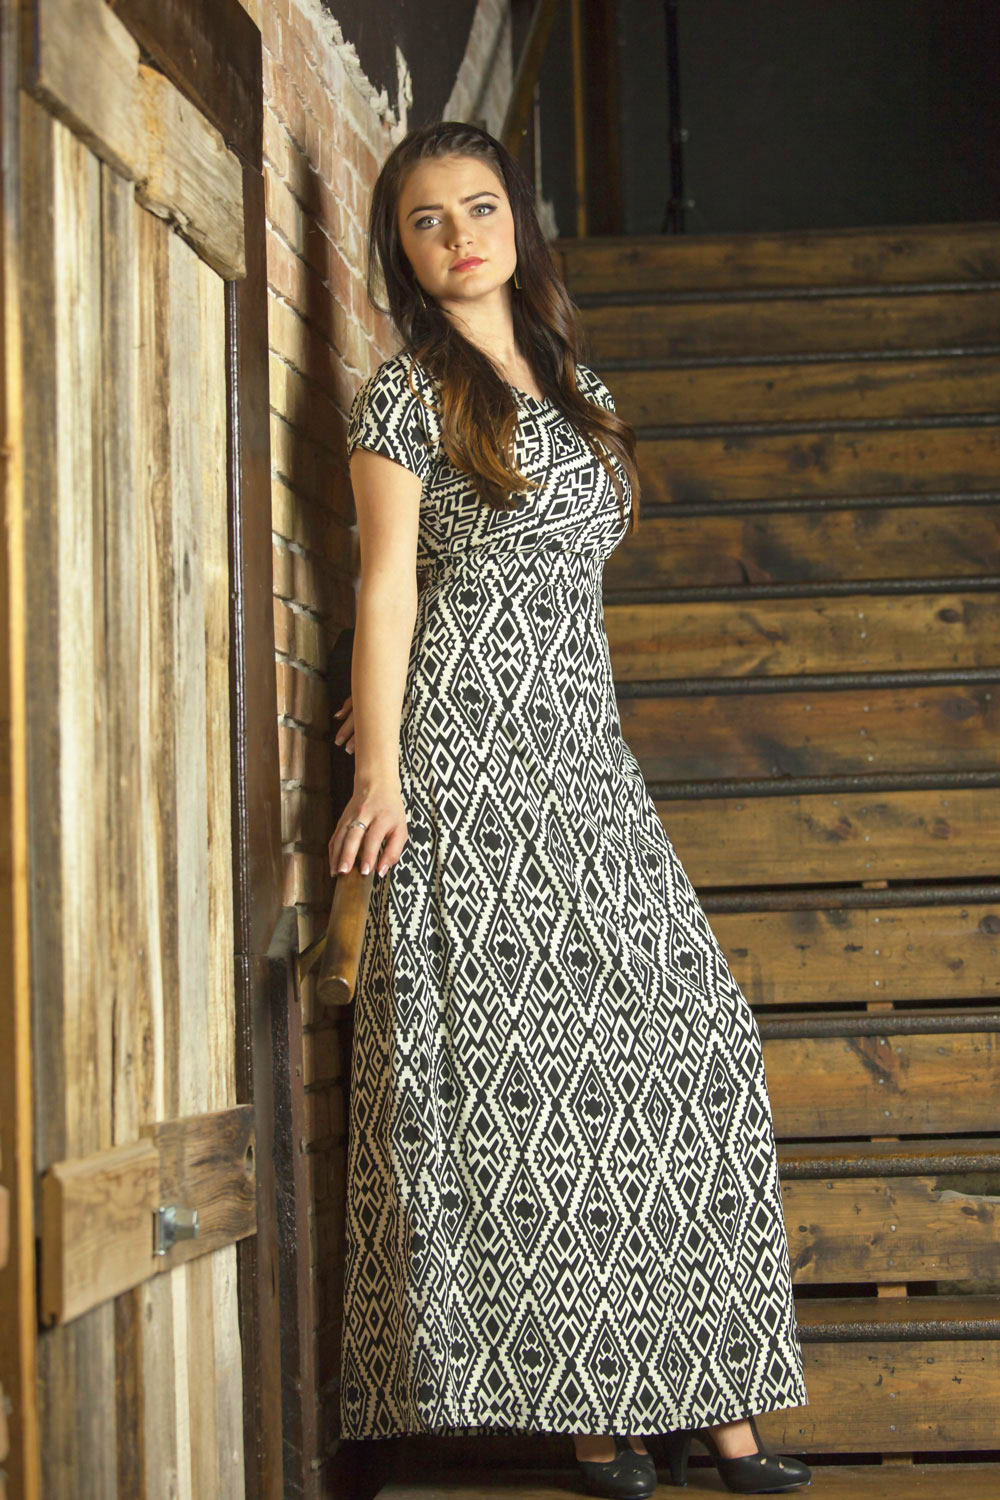 Modest Maxi-Length Dresses with Sleeves: Melinda in Aztec Print